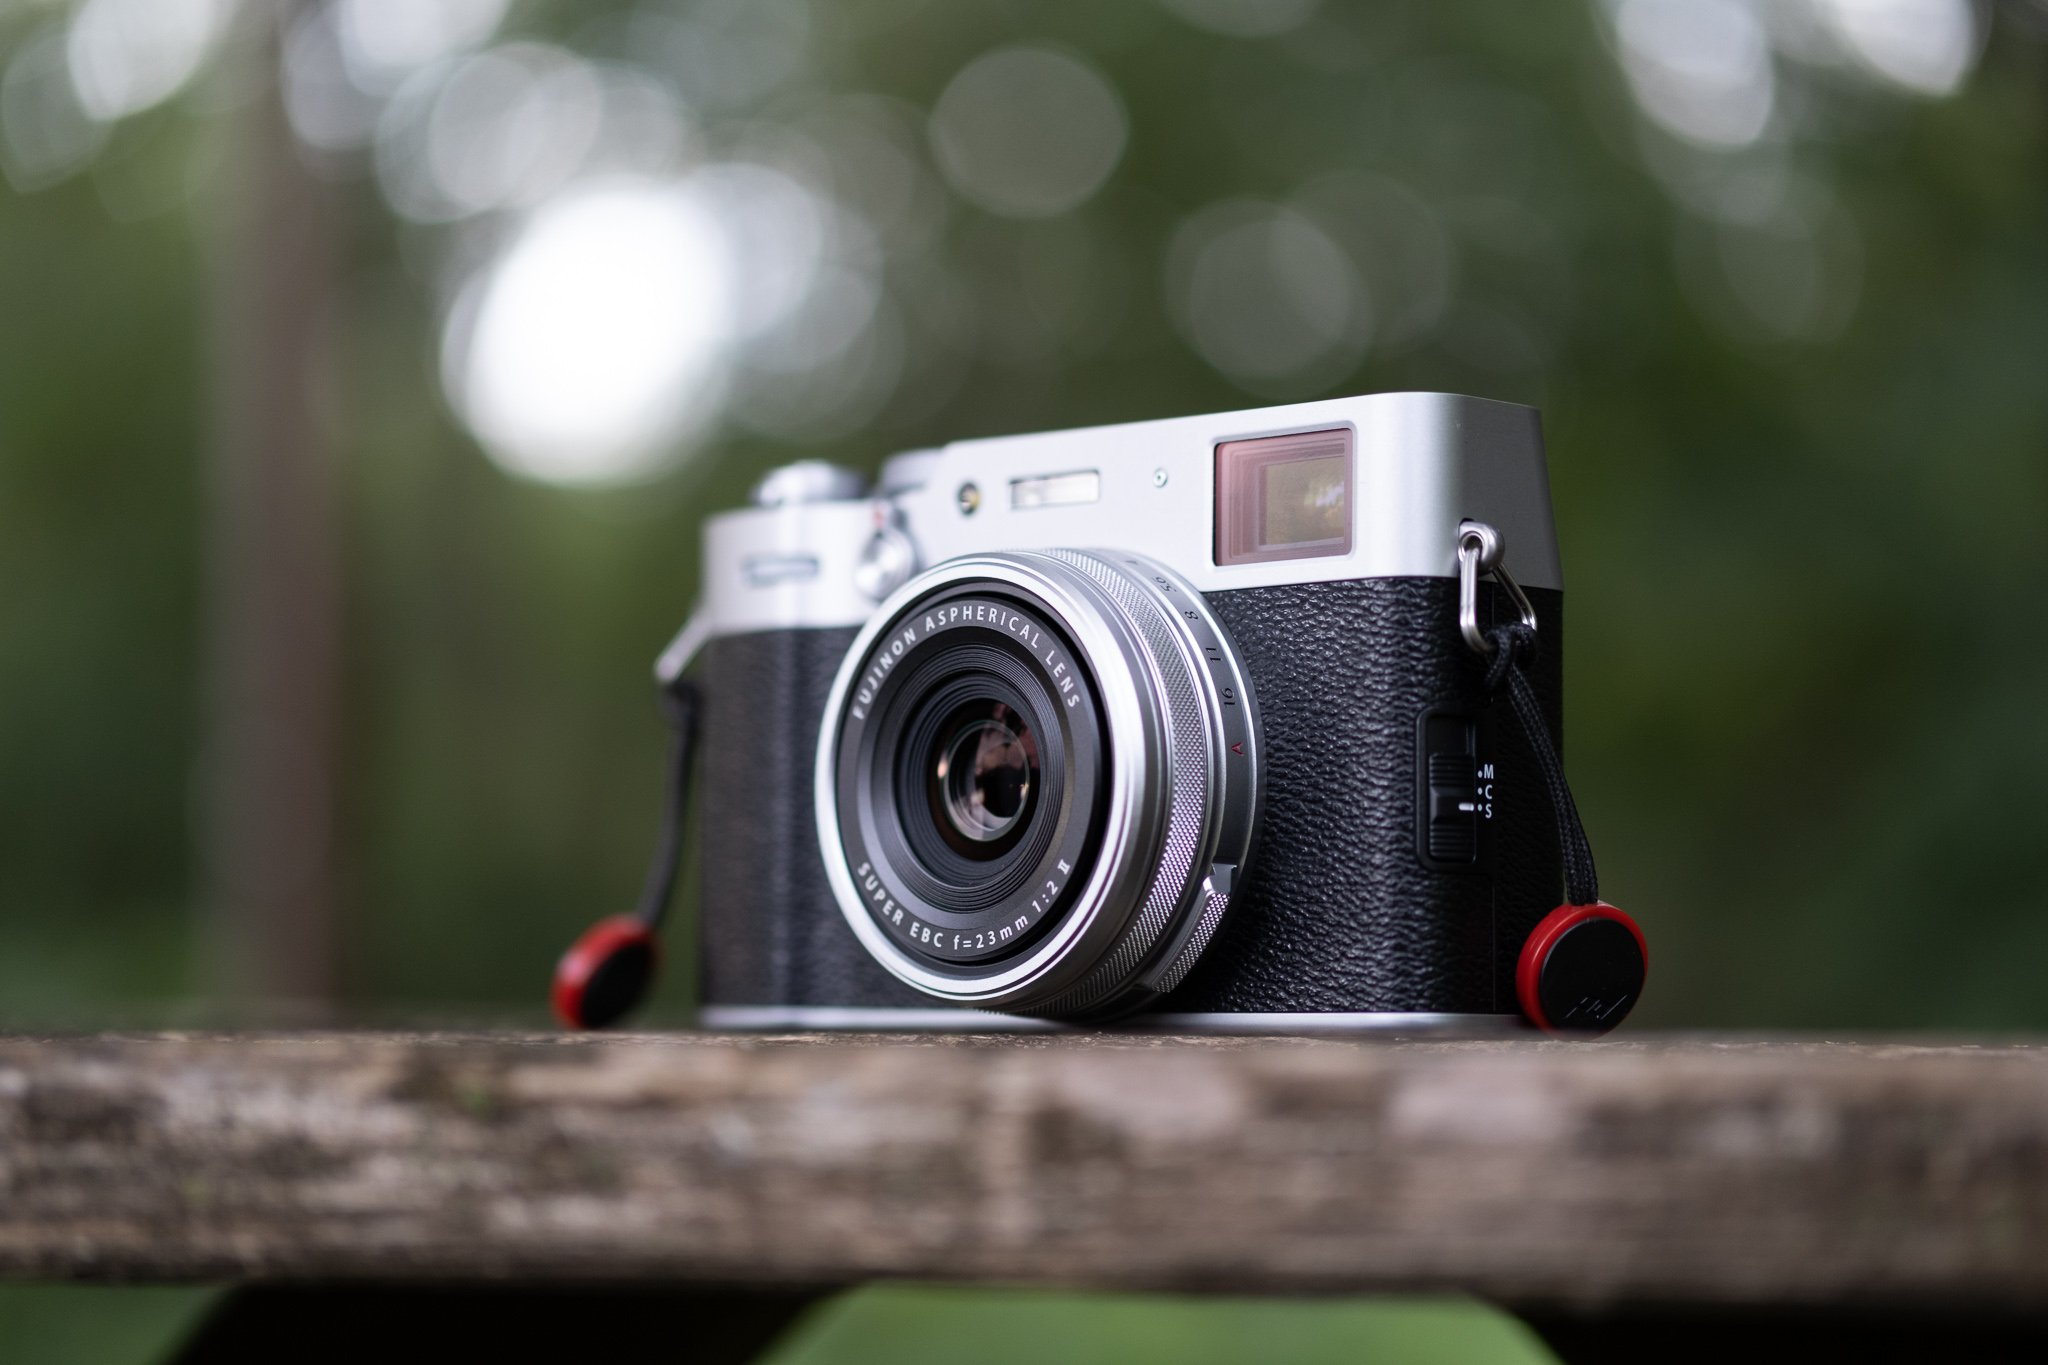 Read more about the article Embracing Imperfection With the Fujifilm X100v: A Photo Walk at Dusk